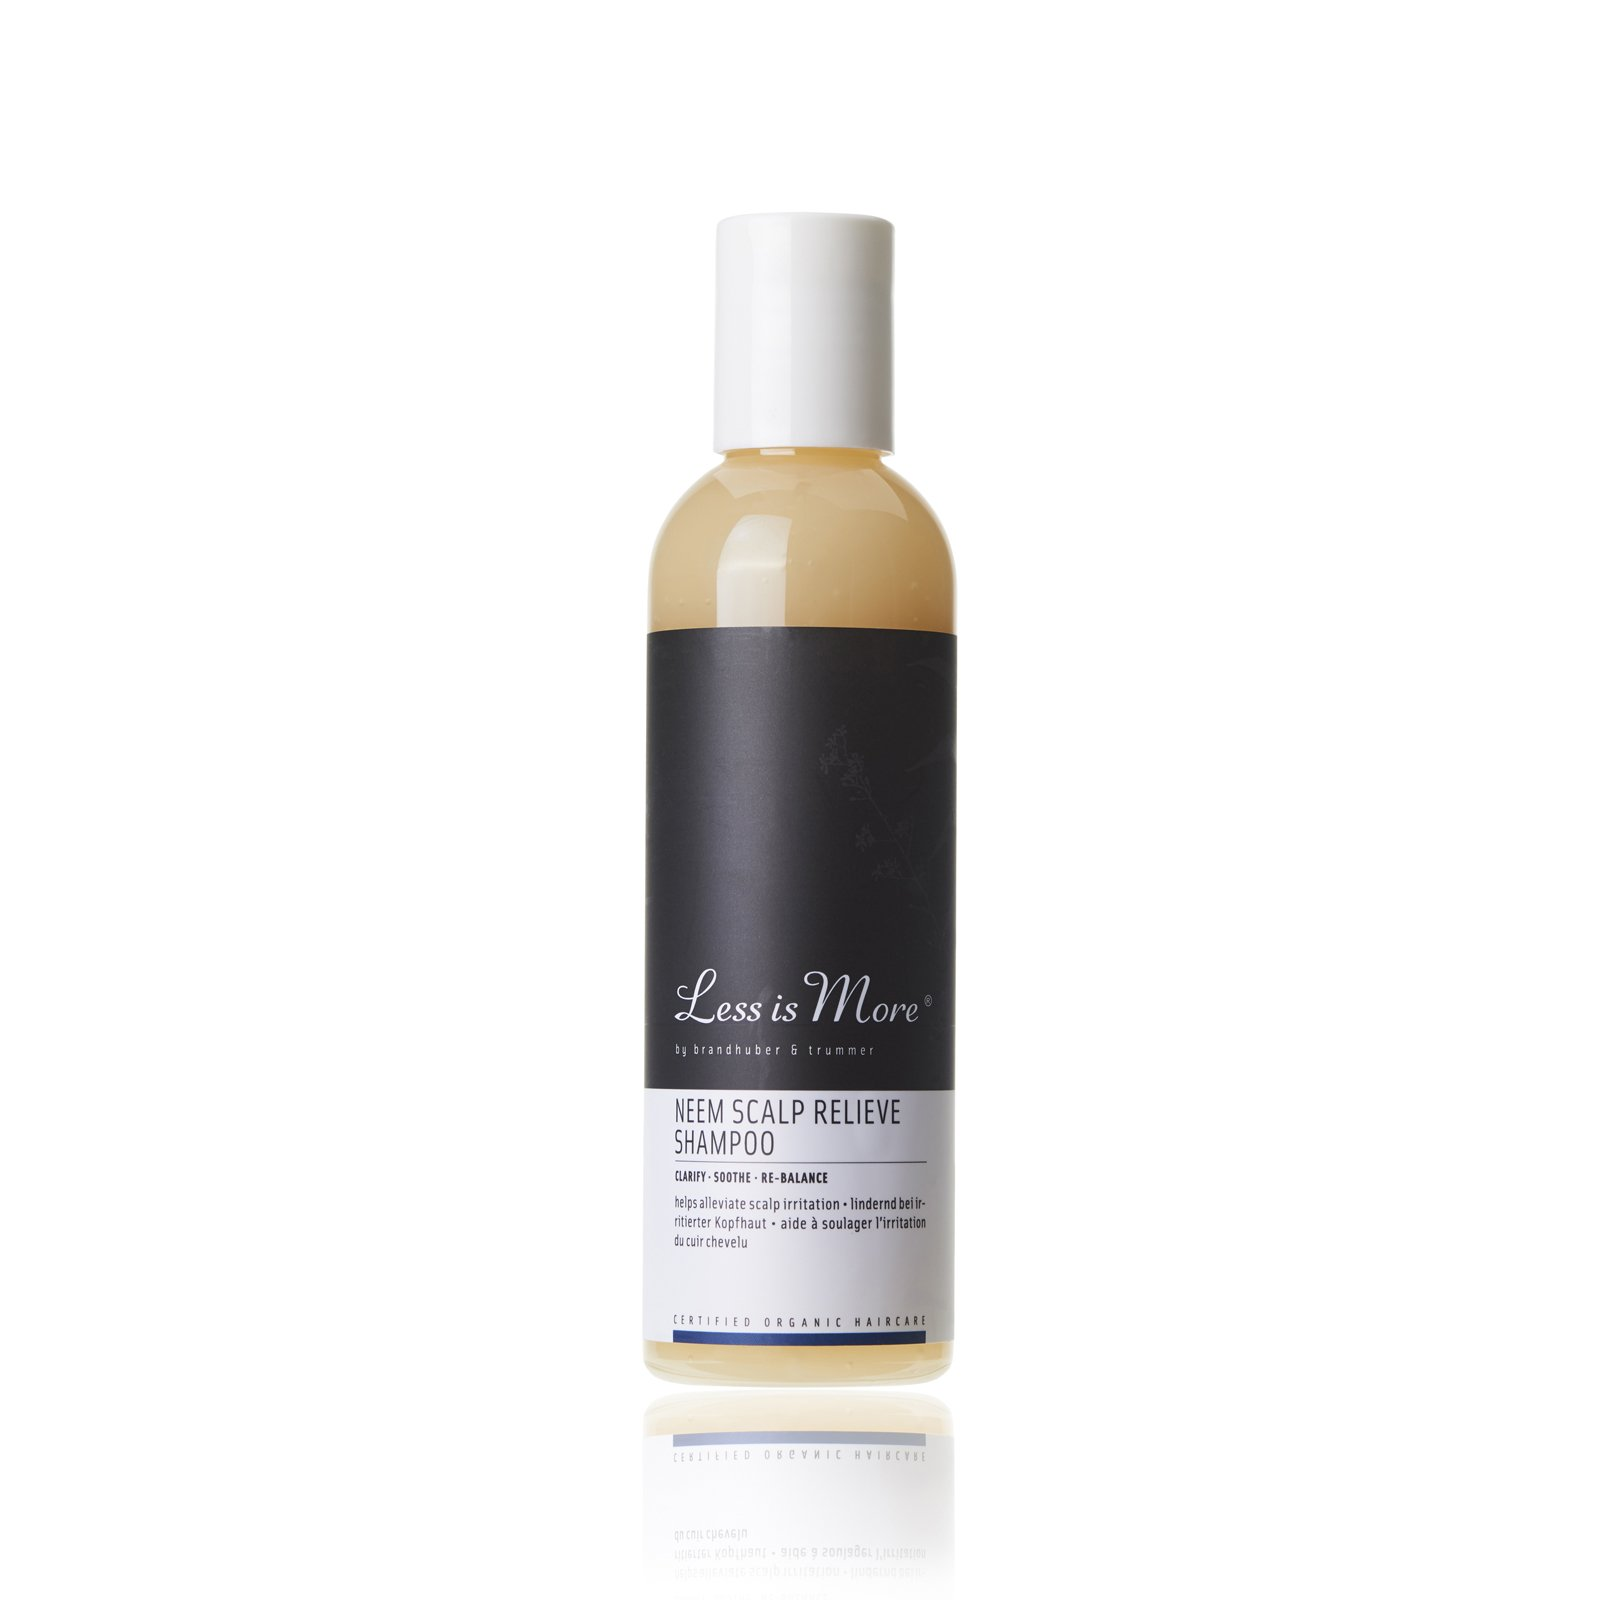 Neem Scalp Relieve Shampoo from Less Is More